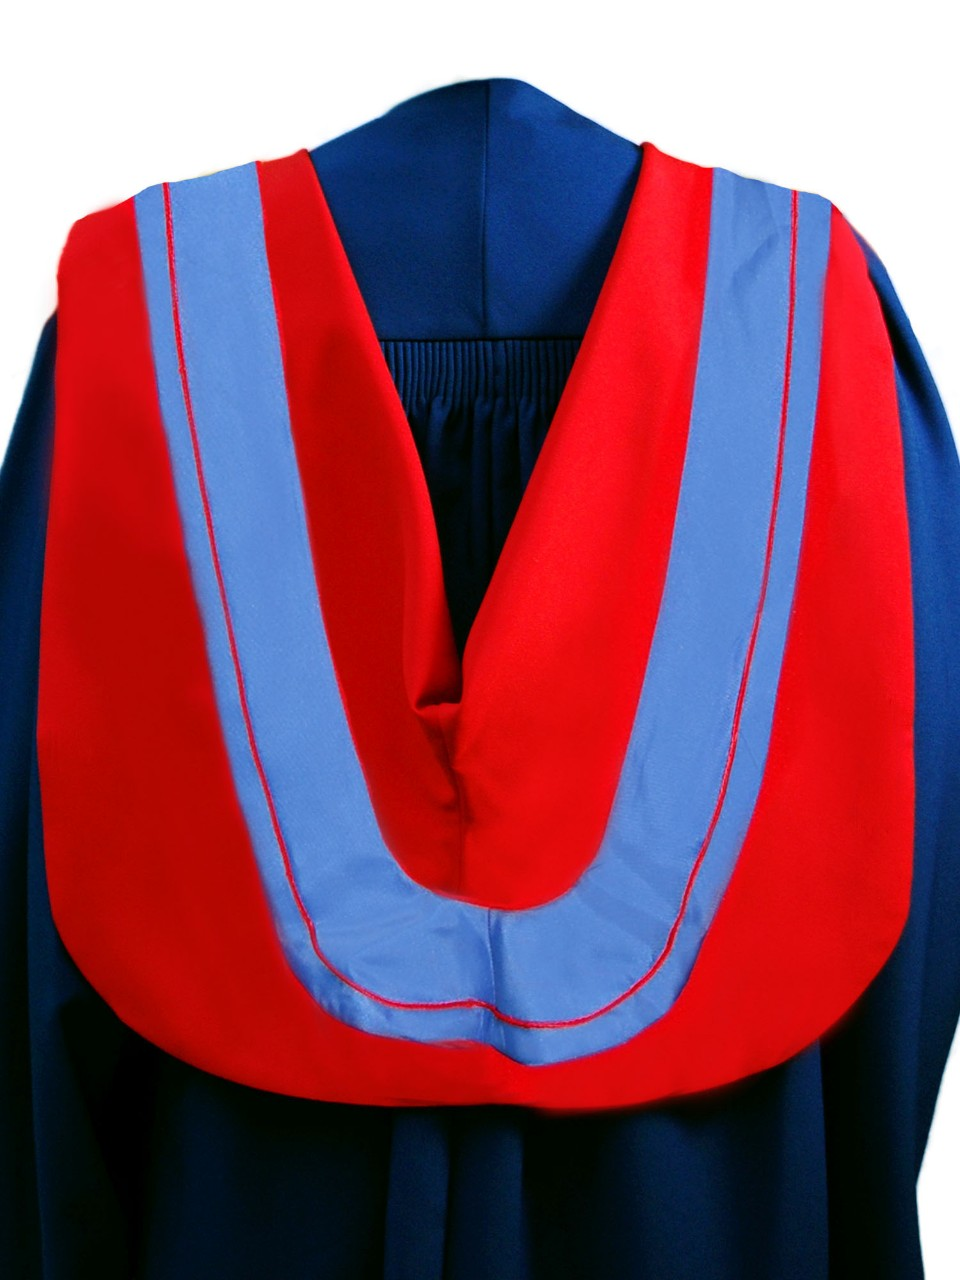 The Master of Arts hood is red with wide blue border and red cording